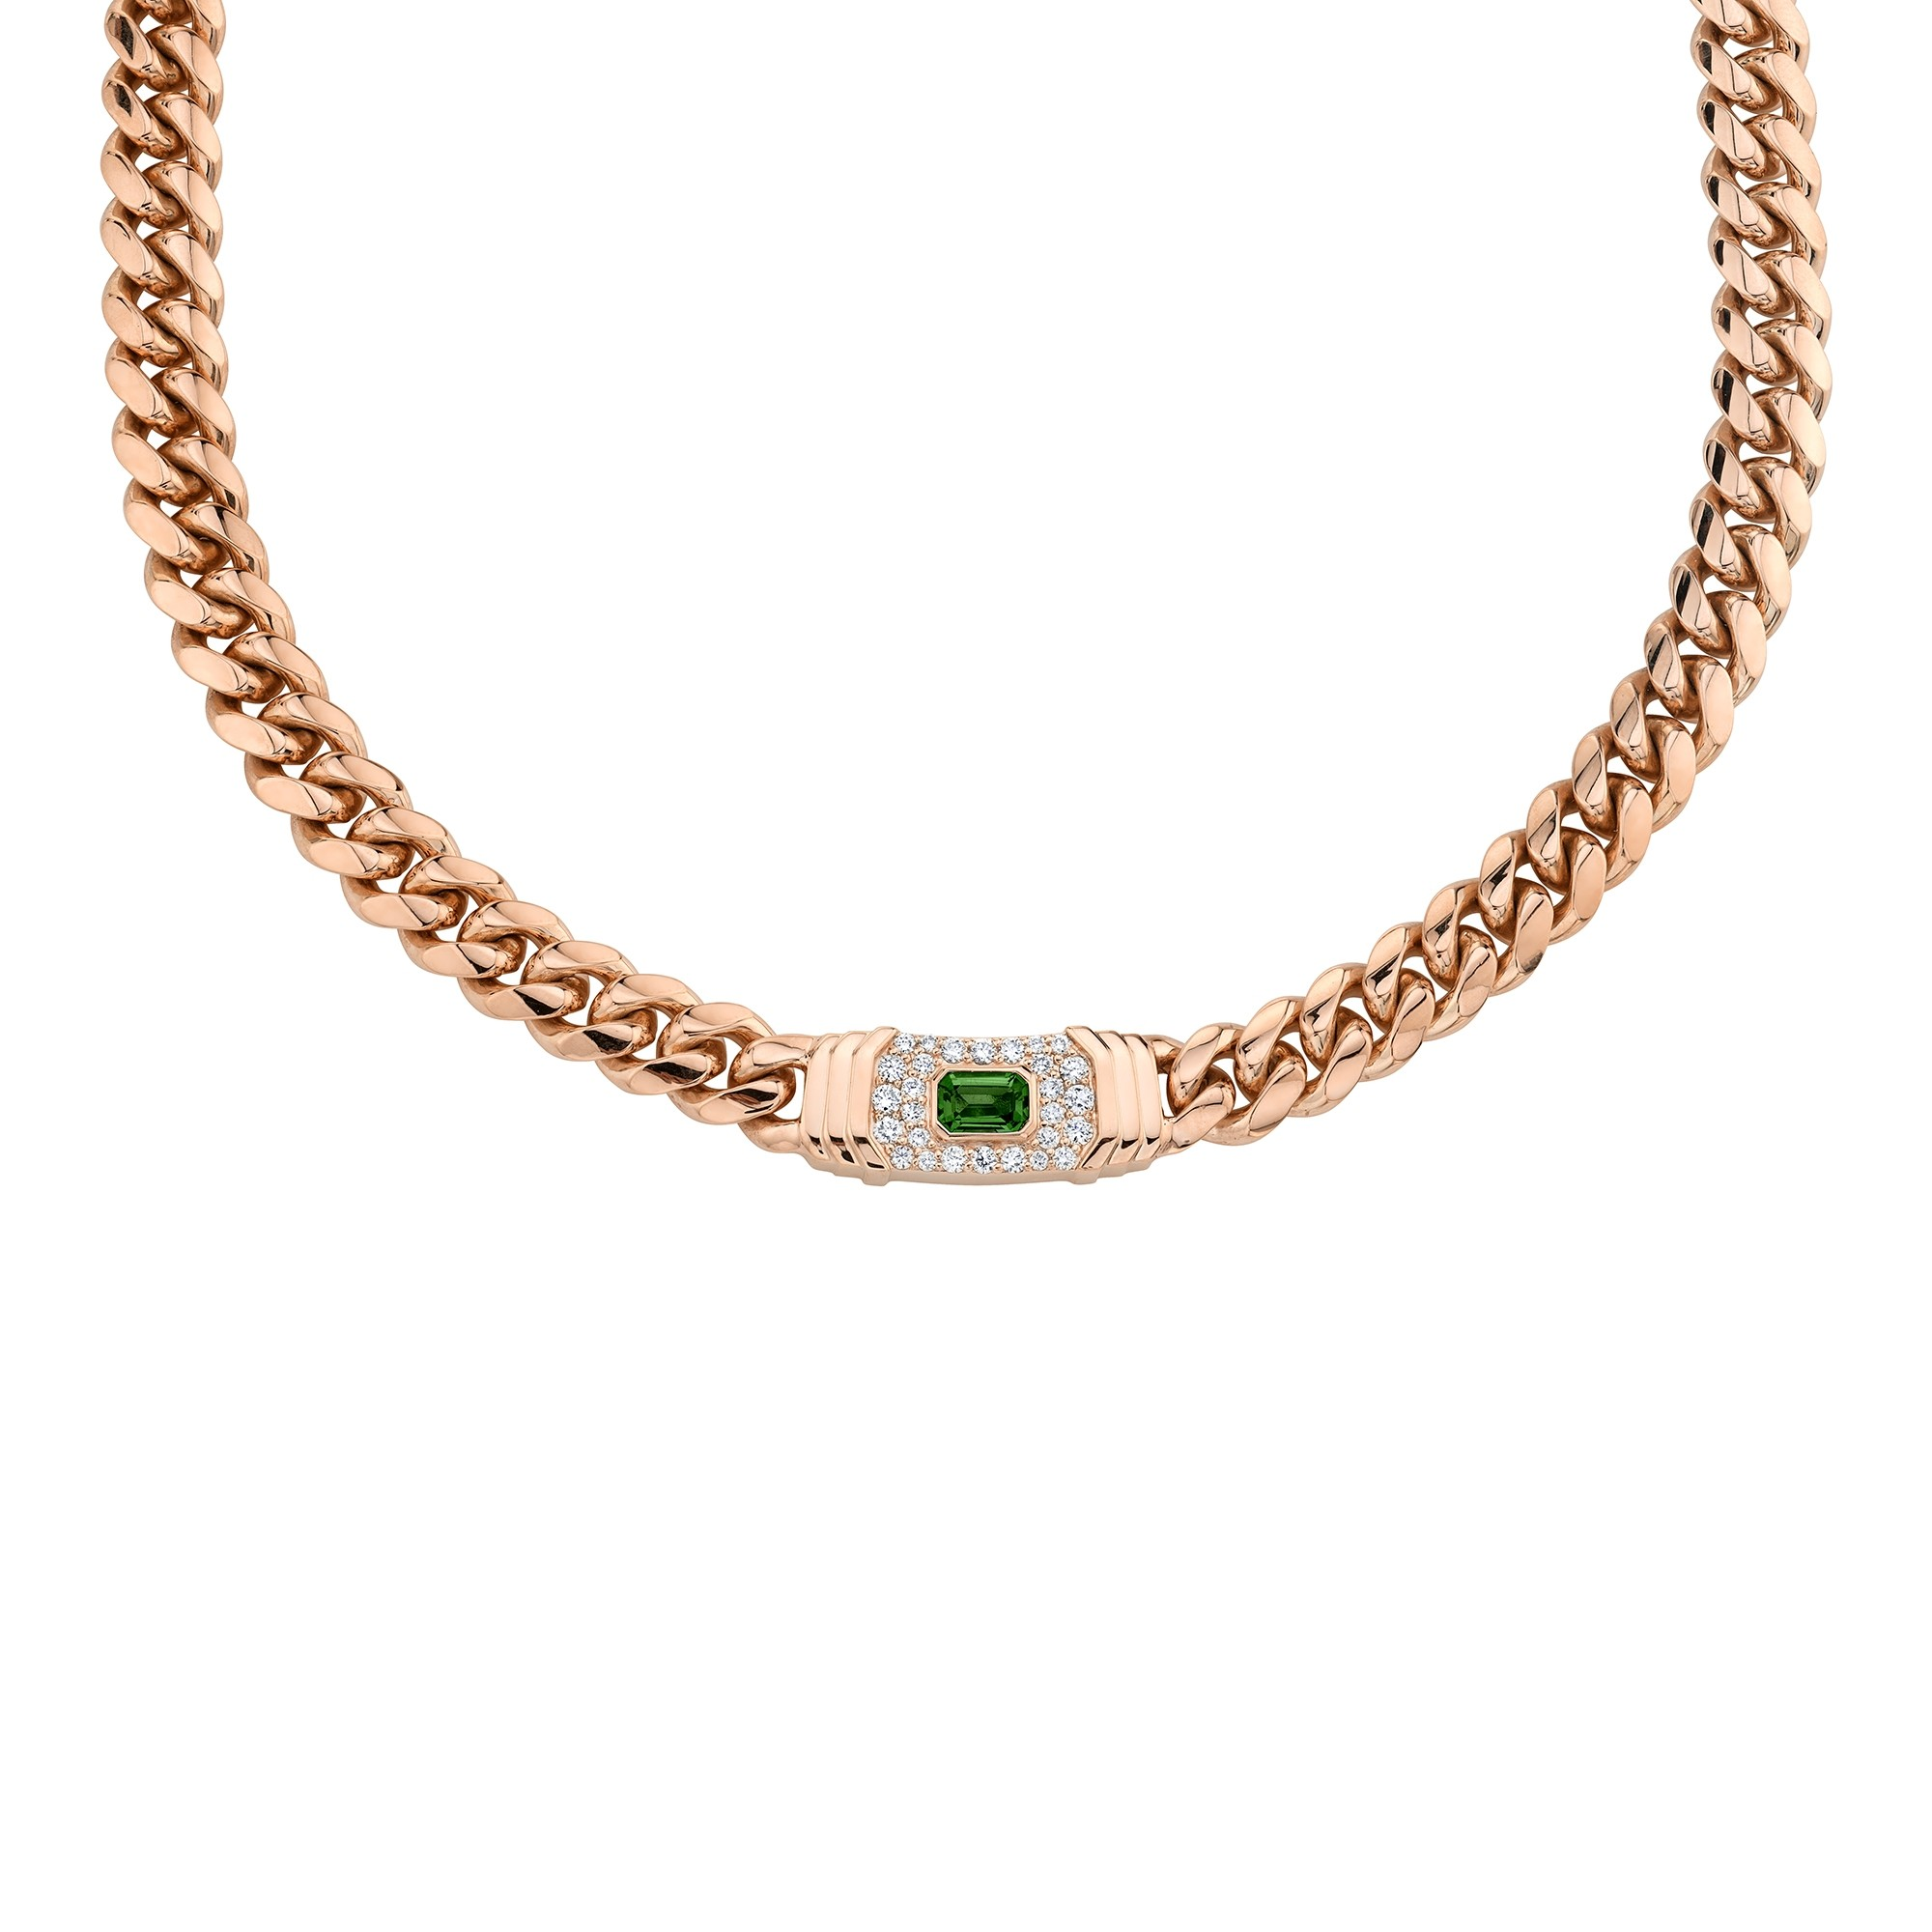 14k Rose Gold Diamond Green Tourmaline Miami Cuban Link Necklace